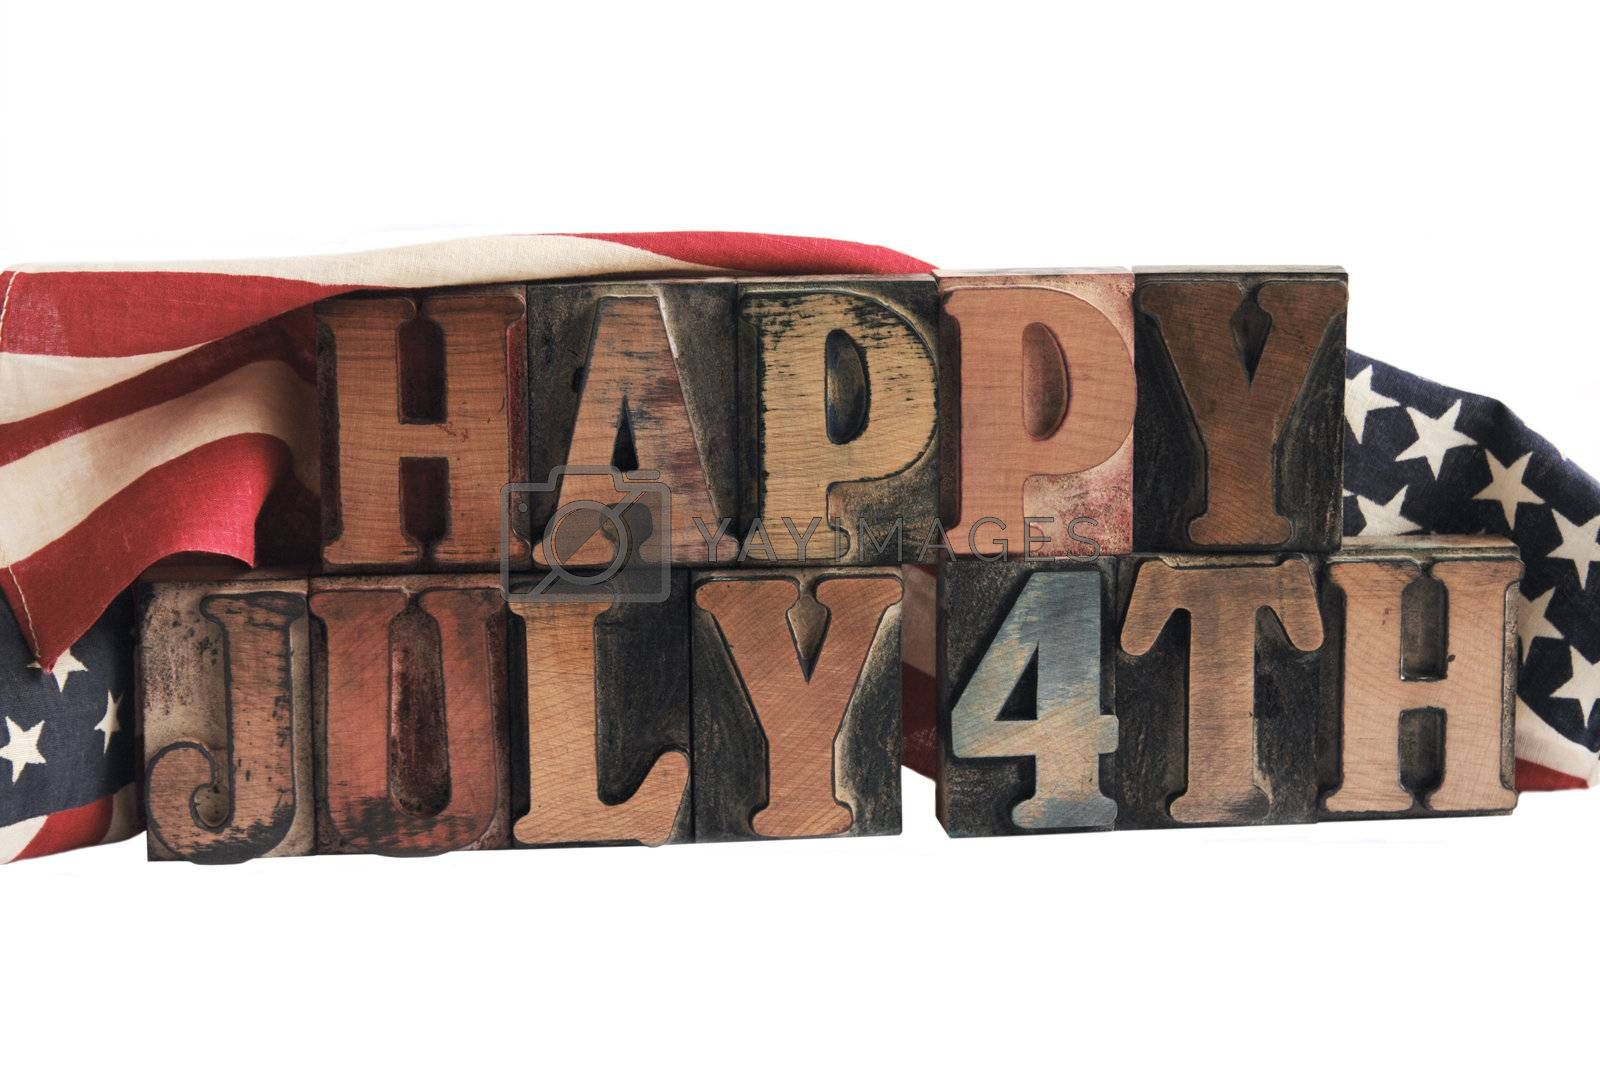 the phrase 'happy July 4th' in ink-stained letterpress type with flags draped behind